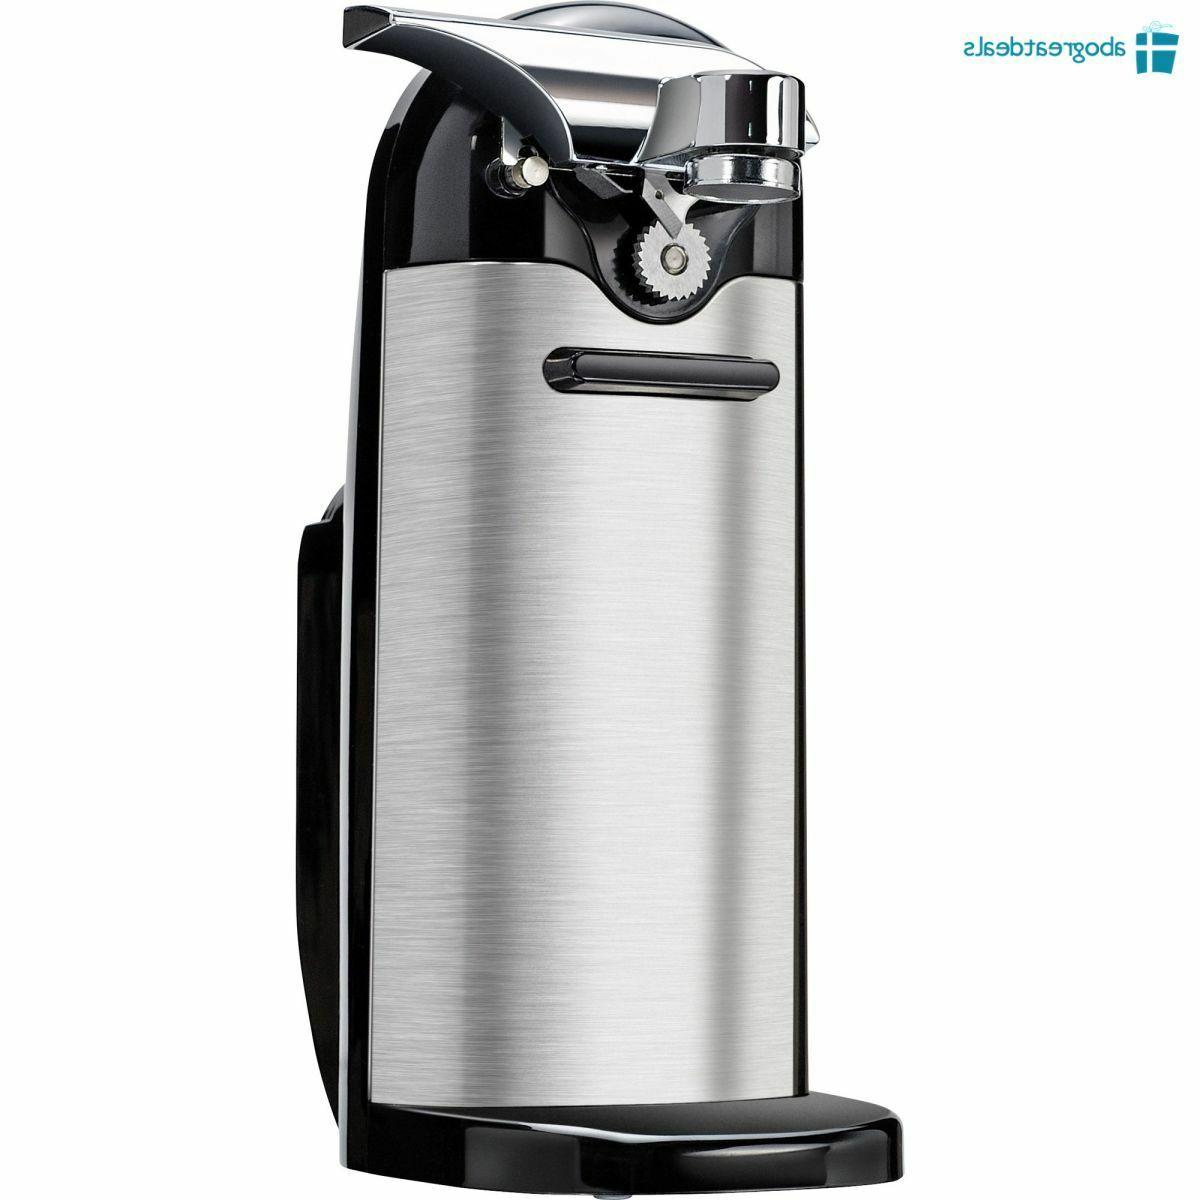 Stainless Steel Electric Can Opener Kenmore with Sharpener SHIPPING